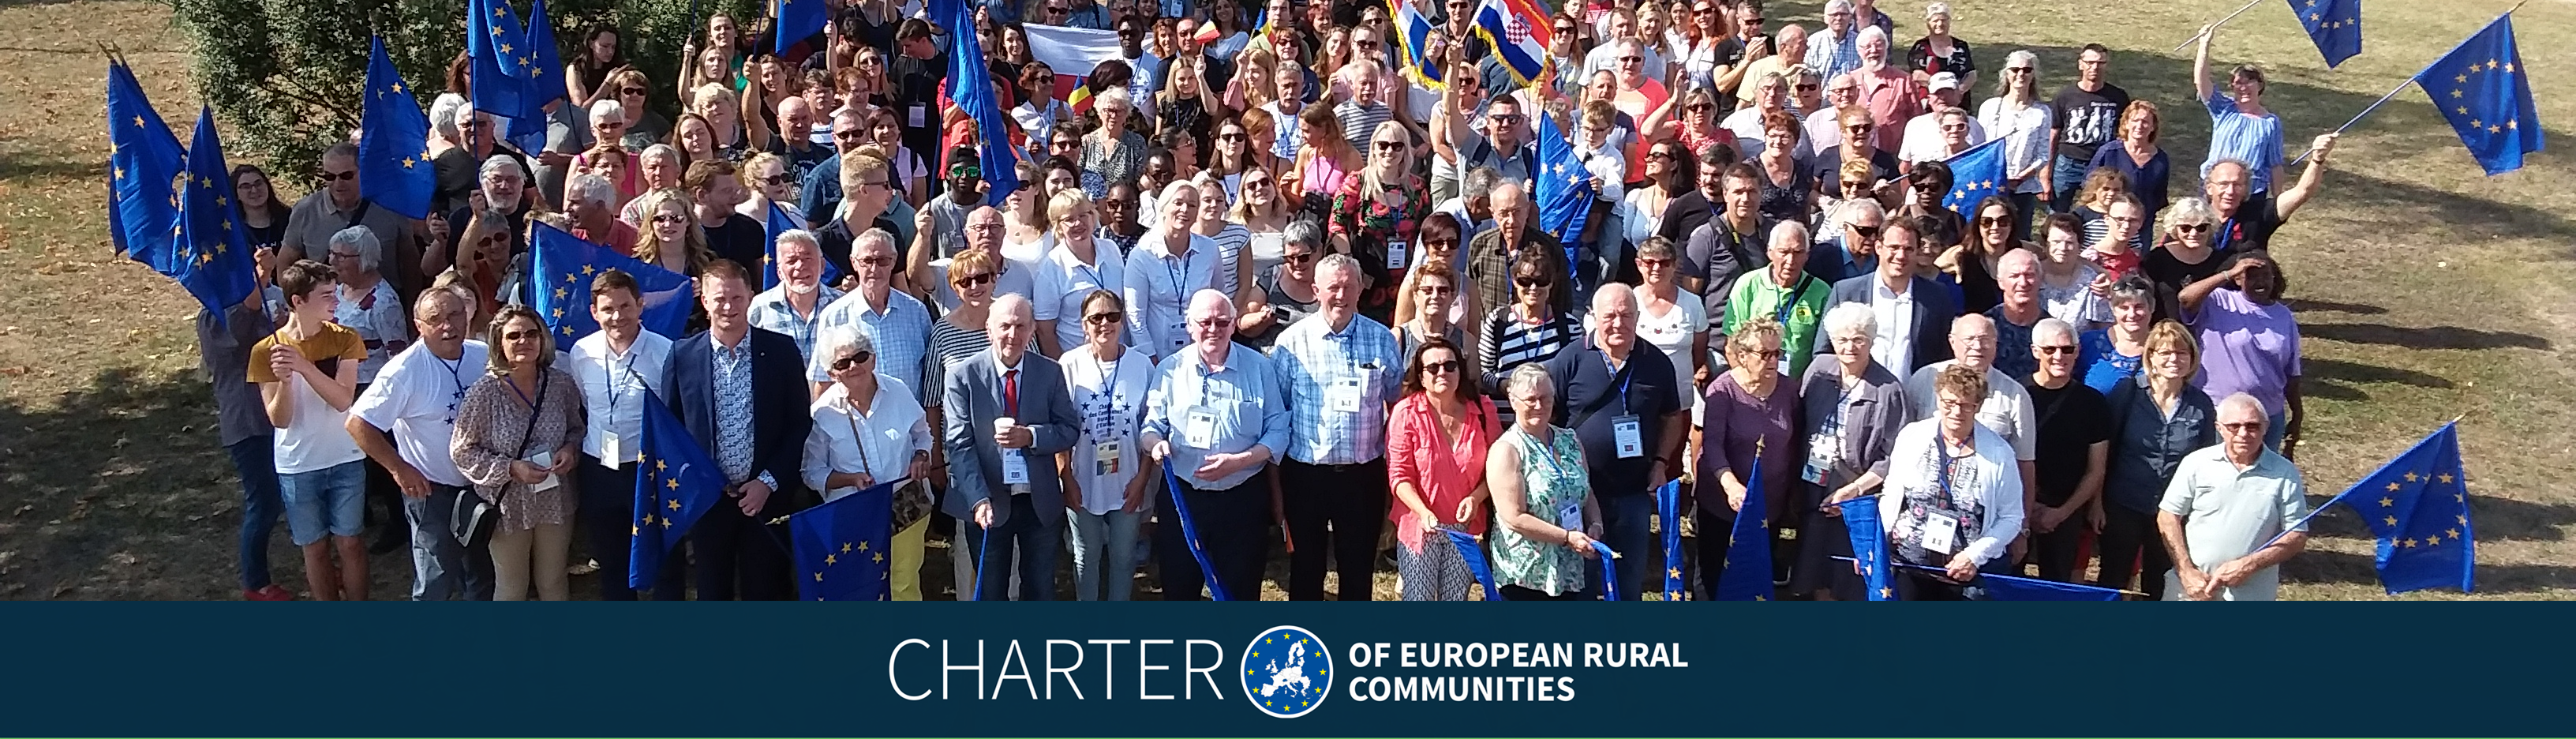 Charter of European Rural Communities